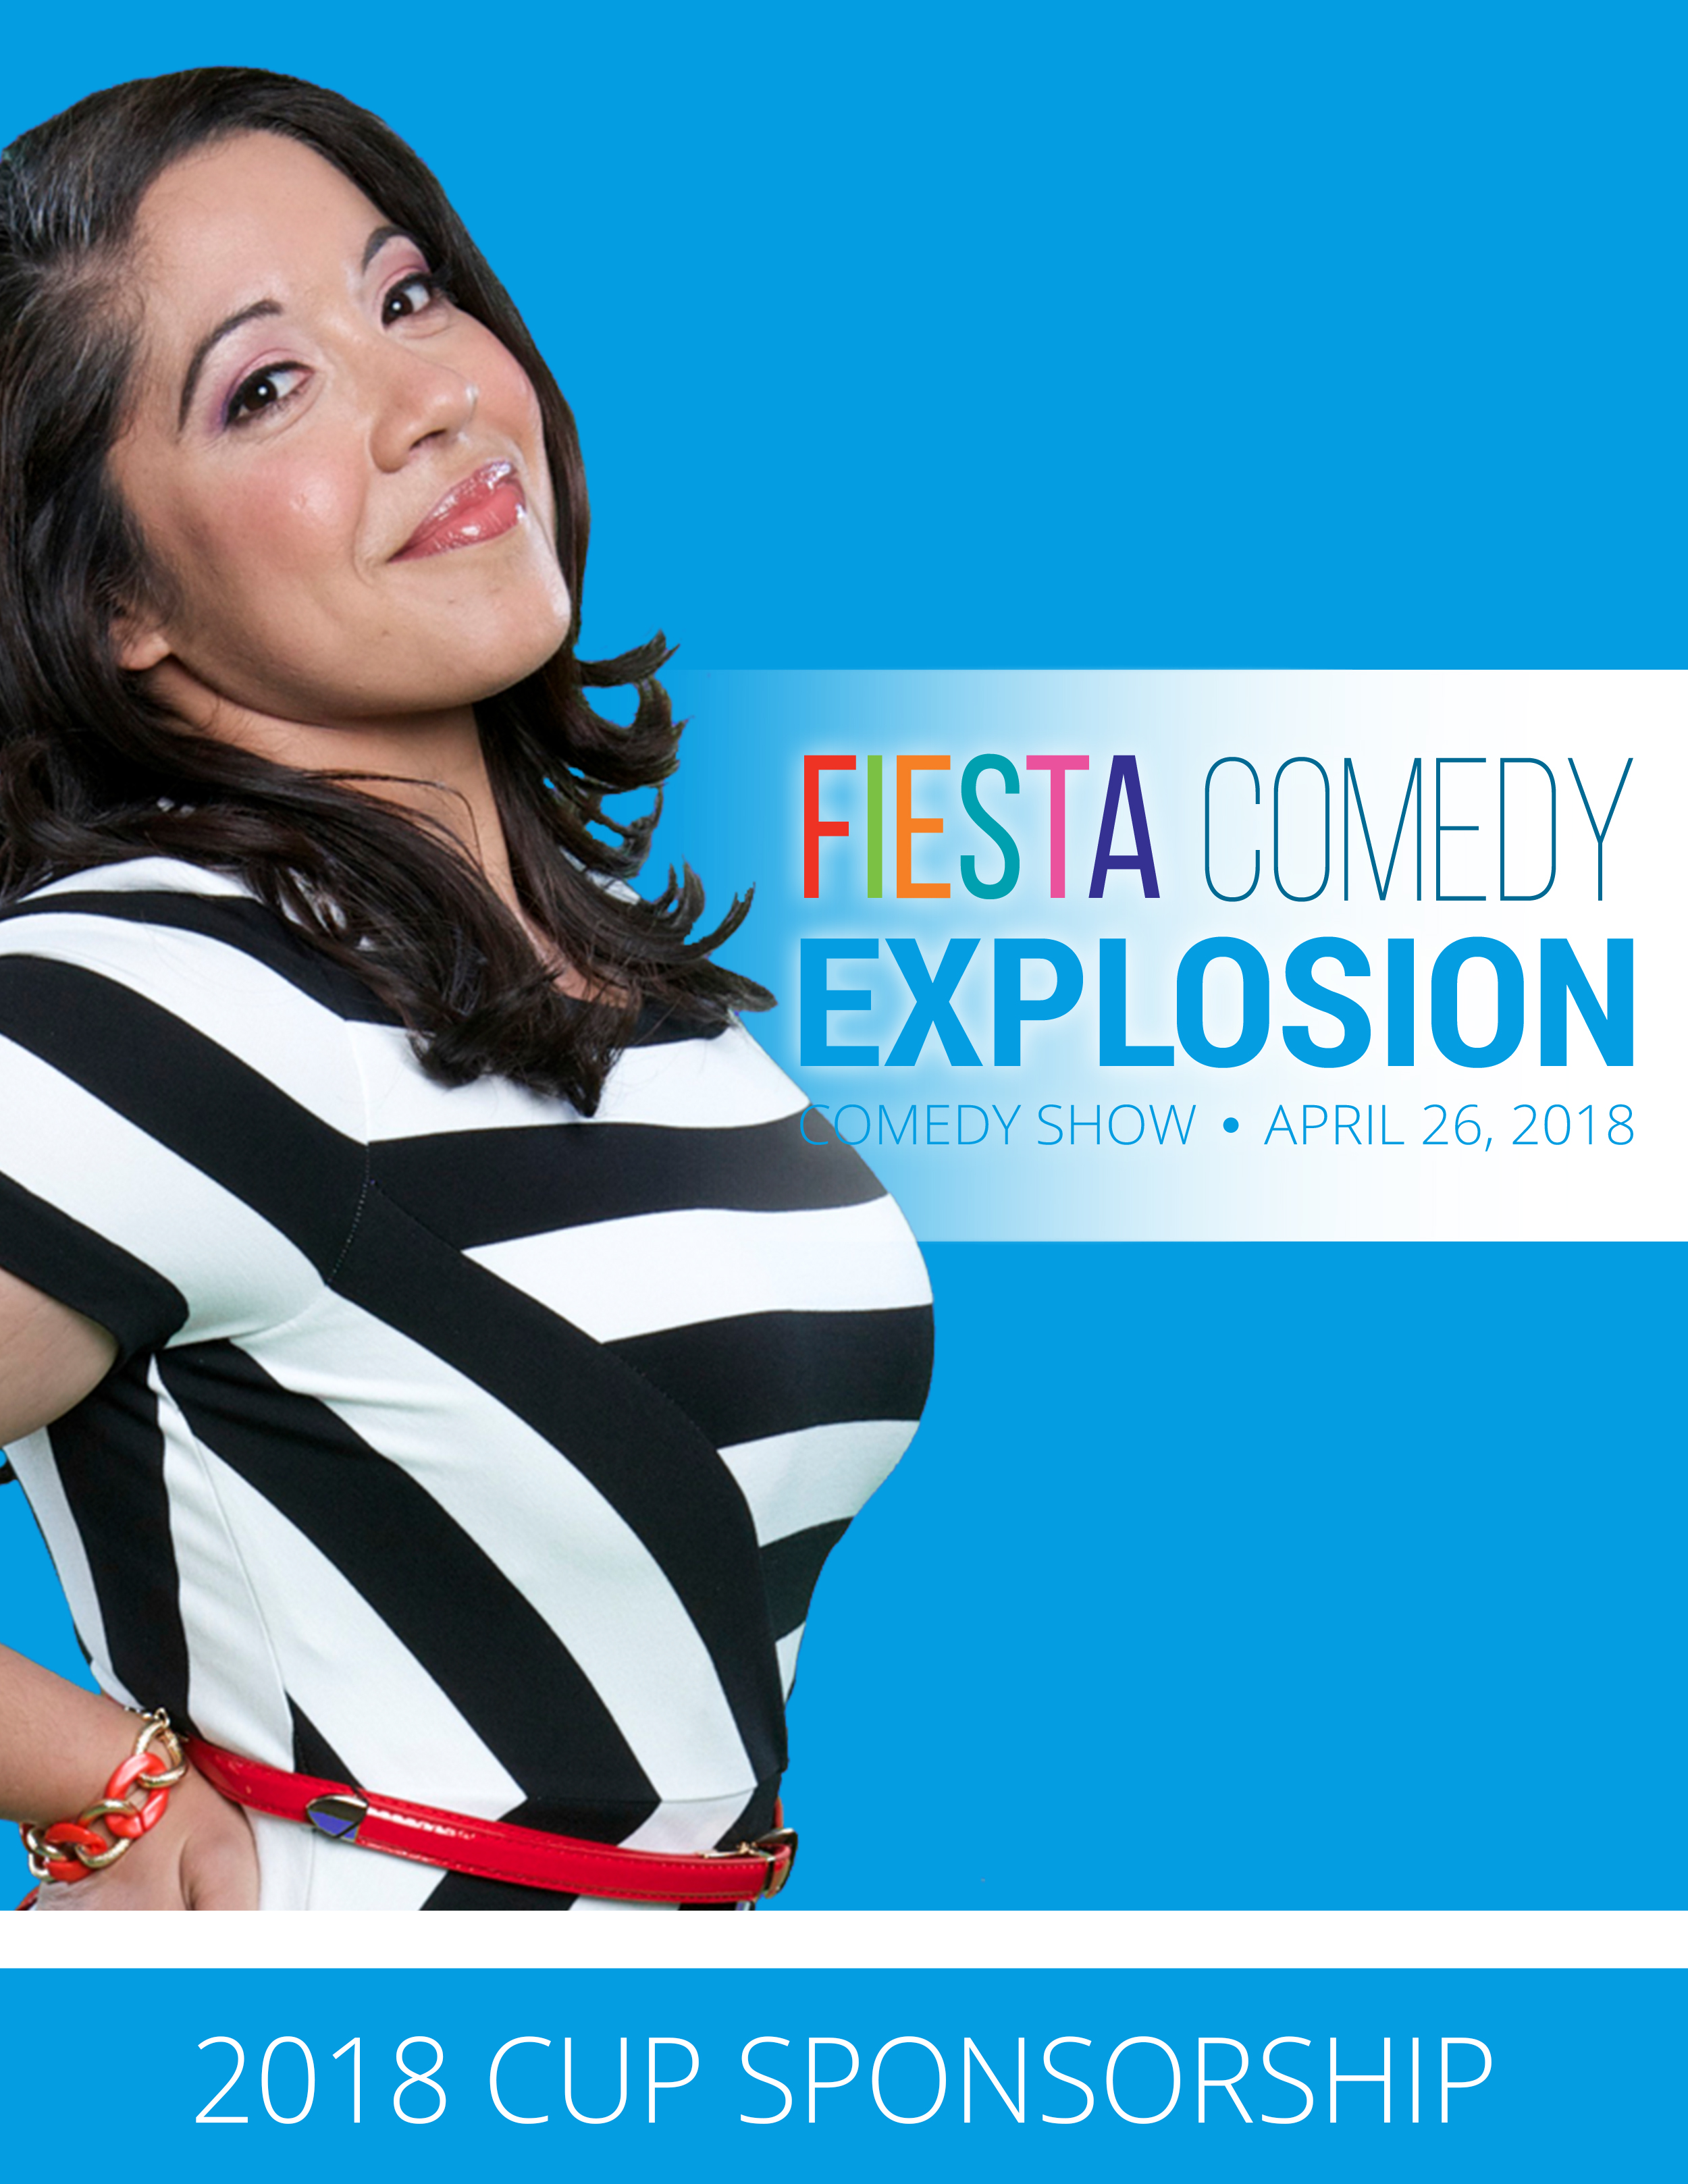 Cup Sponsorship | Fiesta Comedy Explosion 2018 Sponsorship Package | Fiesta San Antonio | Official Priest Holmes Foundation Website | Priest Holmes Son | Priest Holmes Girlfriend | Priest Holmes Wife | Priest Holmes Engaged | Priest Holmes Family | Priest Holmes is Engaged